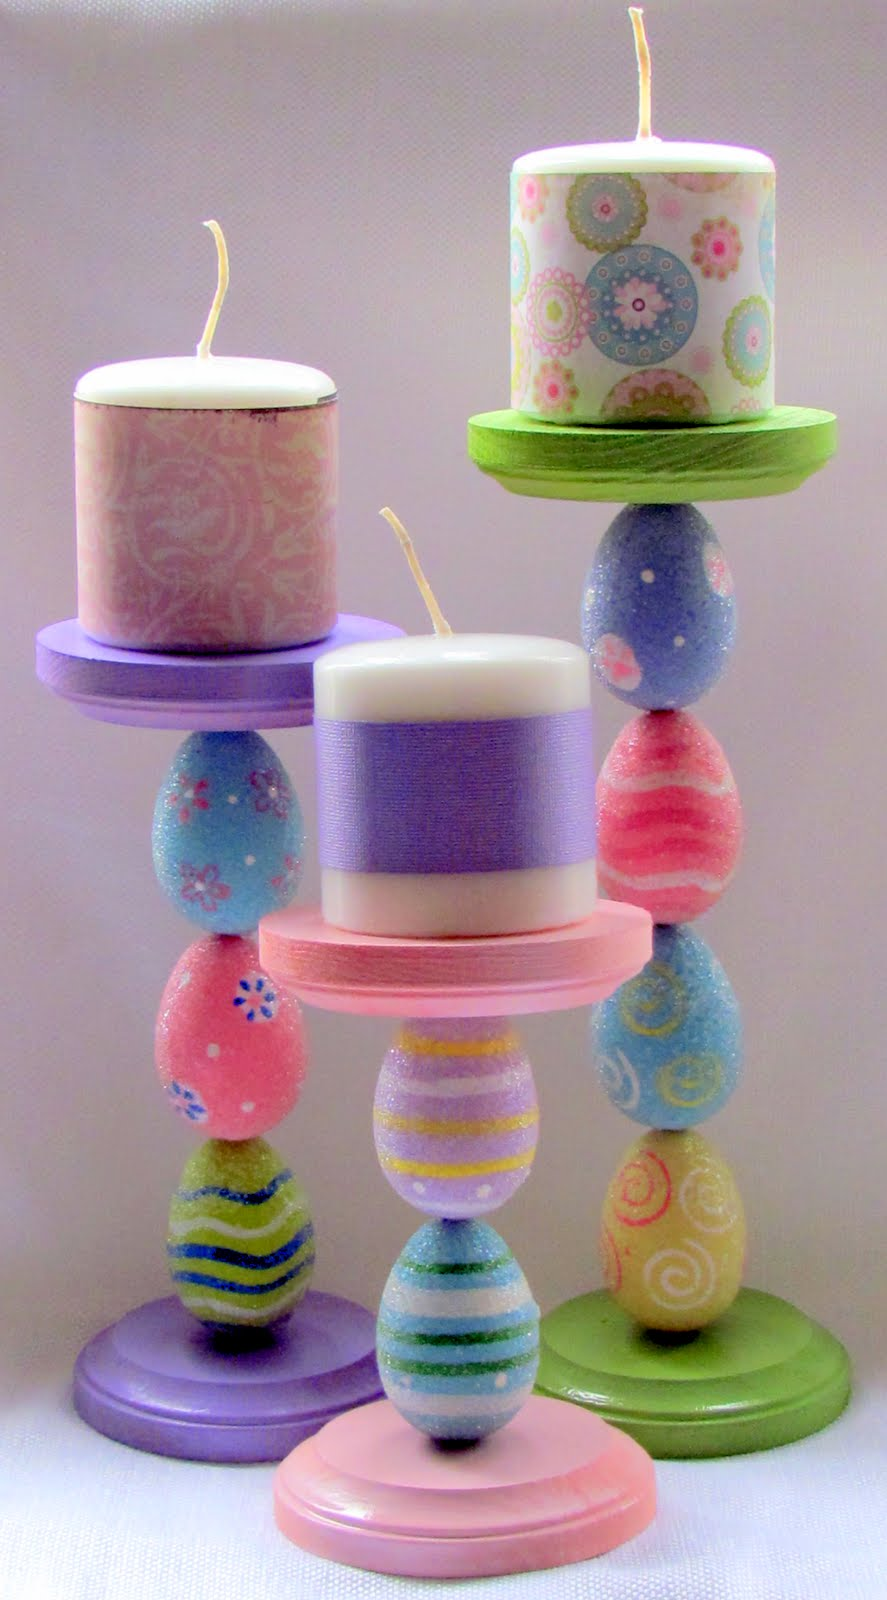 8 egg craft ideas